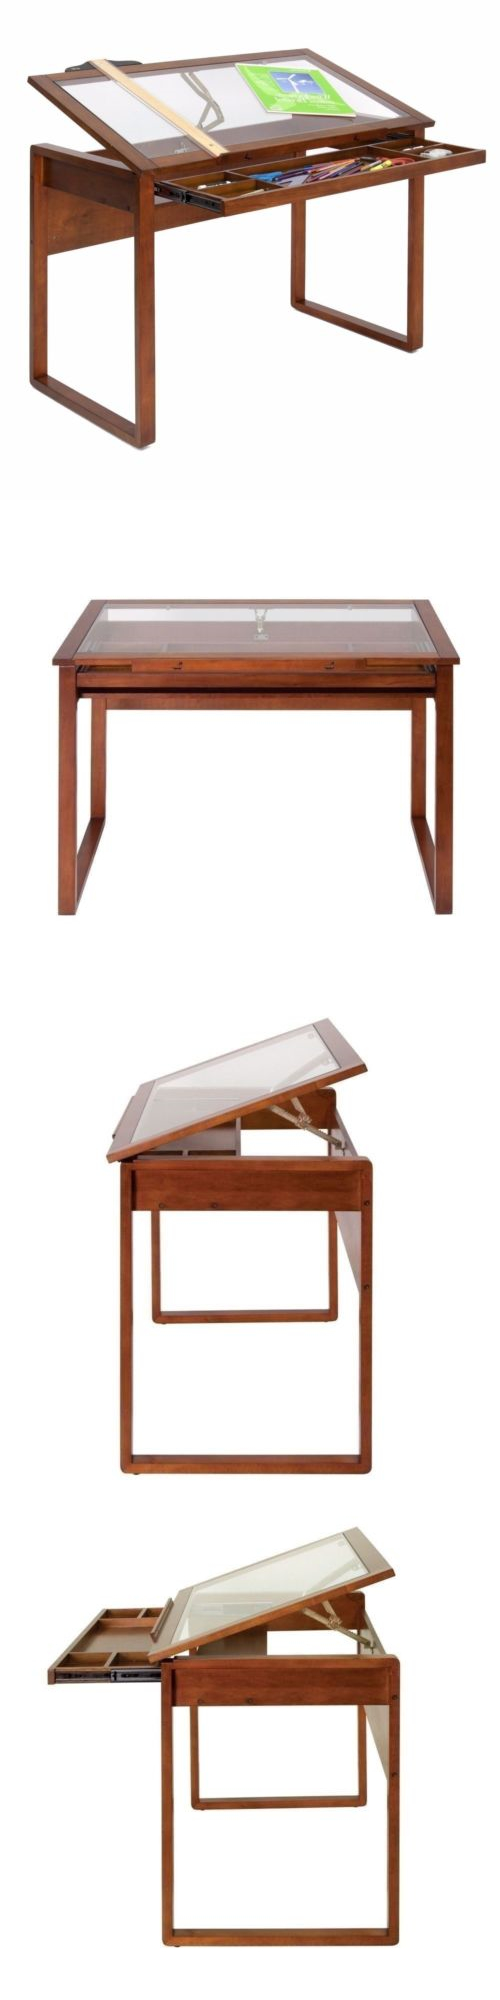 High Quality Drawing Boards And Tables 183083: Ponderosa Drafting Table Adjustable Art  Architect Design Desk Glass Top